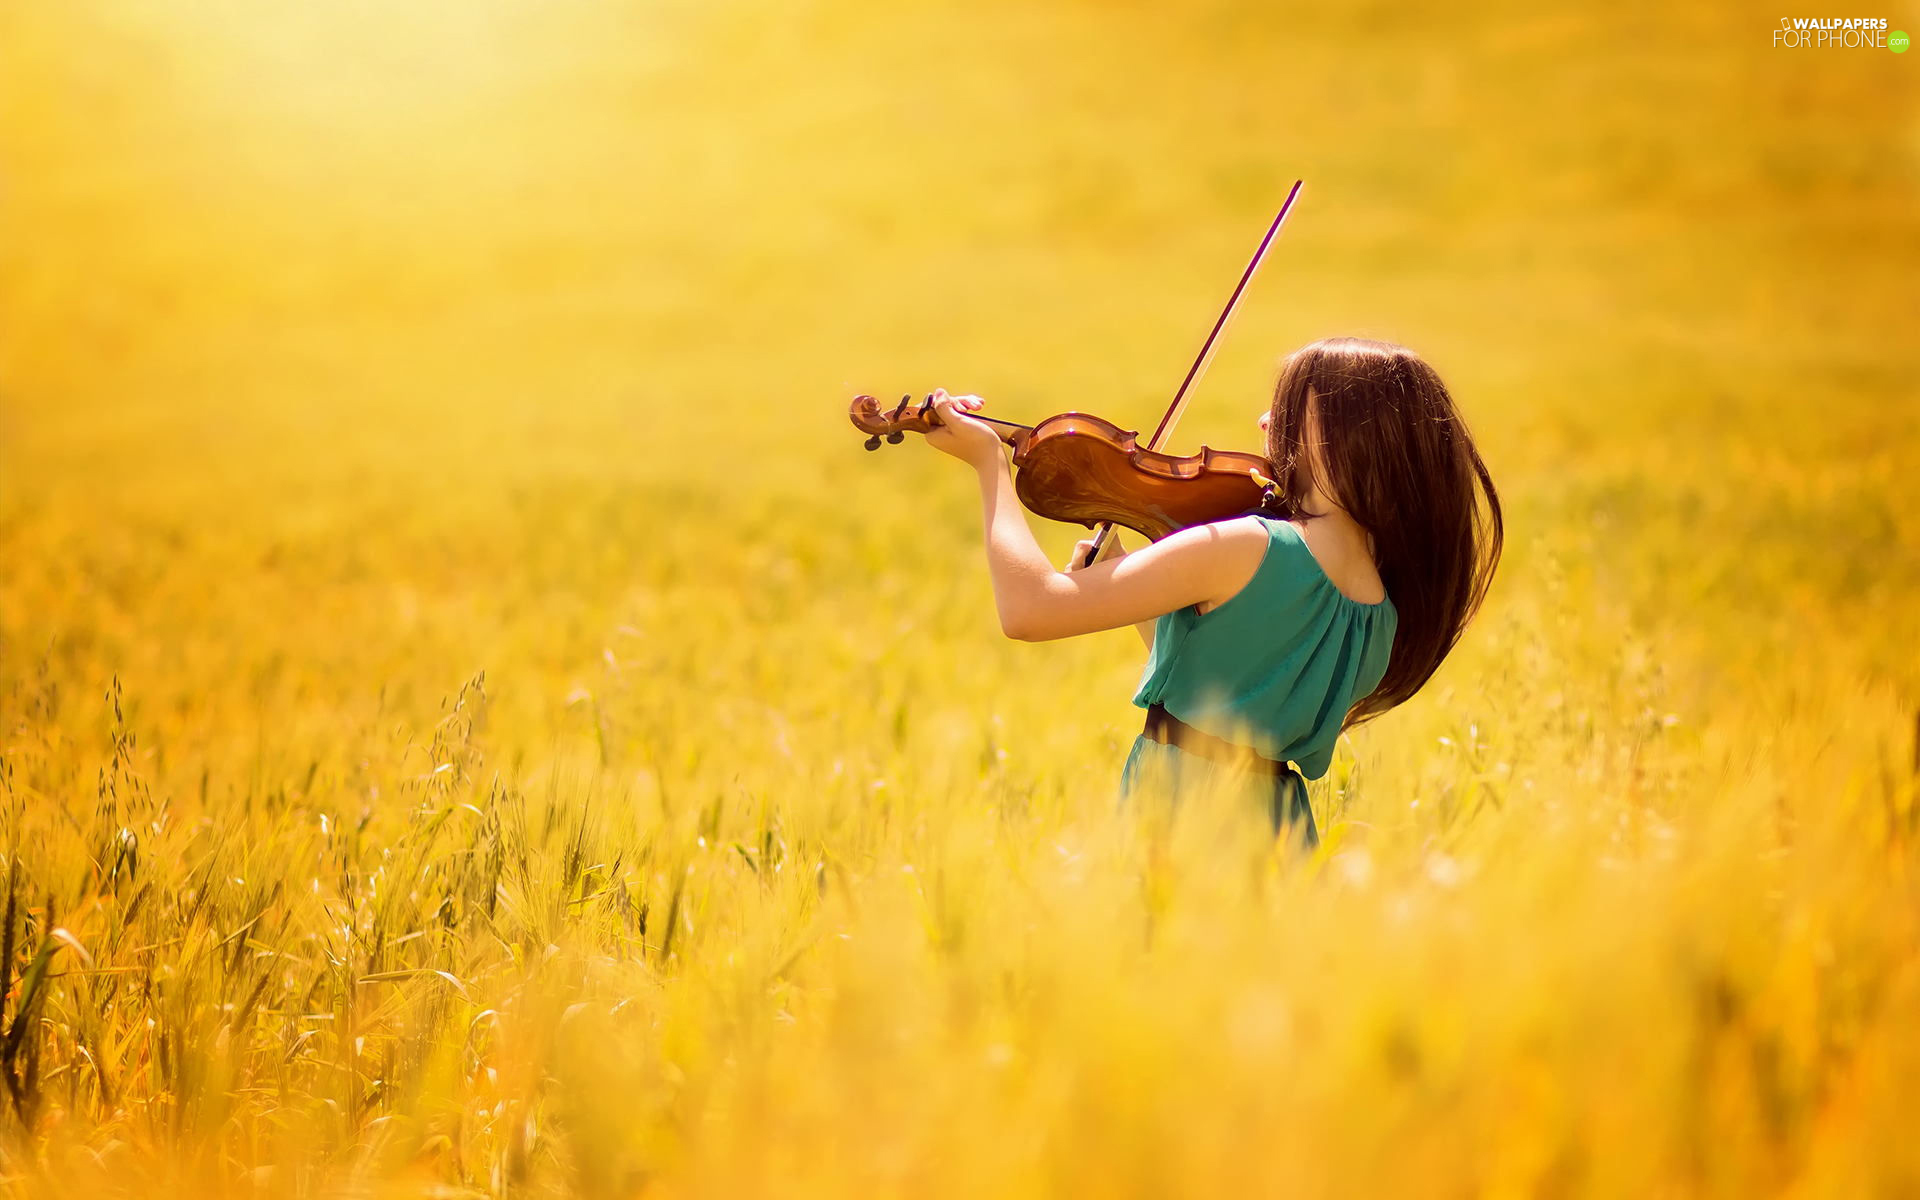 violin, Field, Women